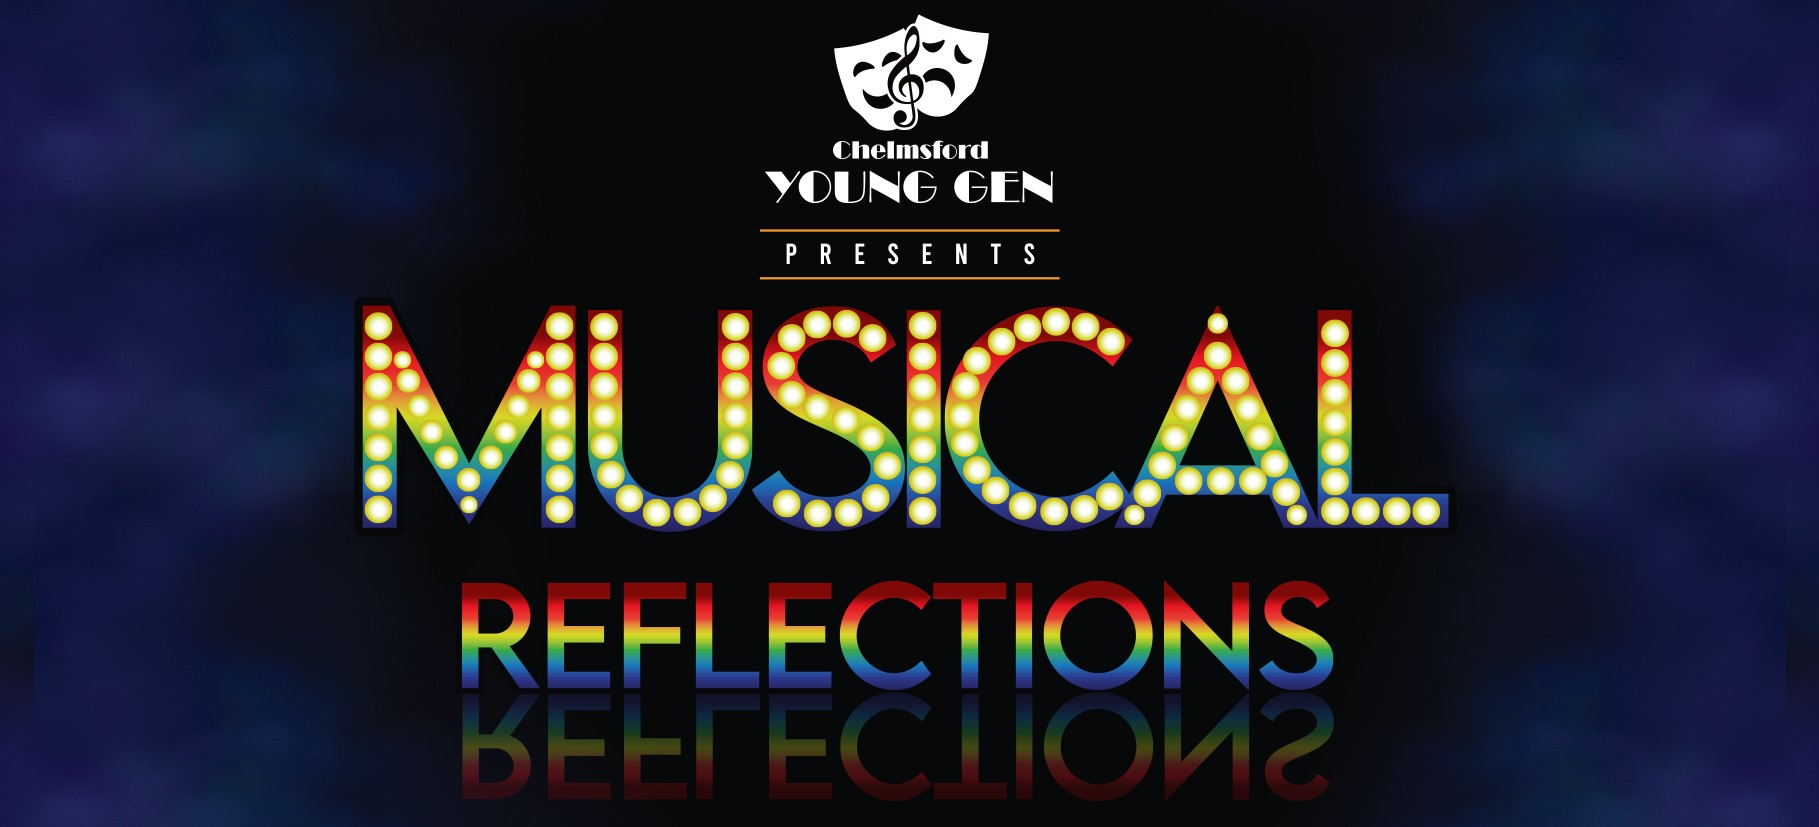 Musical Reflections Chelmsford Young Generation - November 2nd Chelmsford Civic Theatre